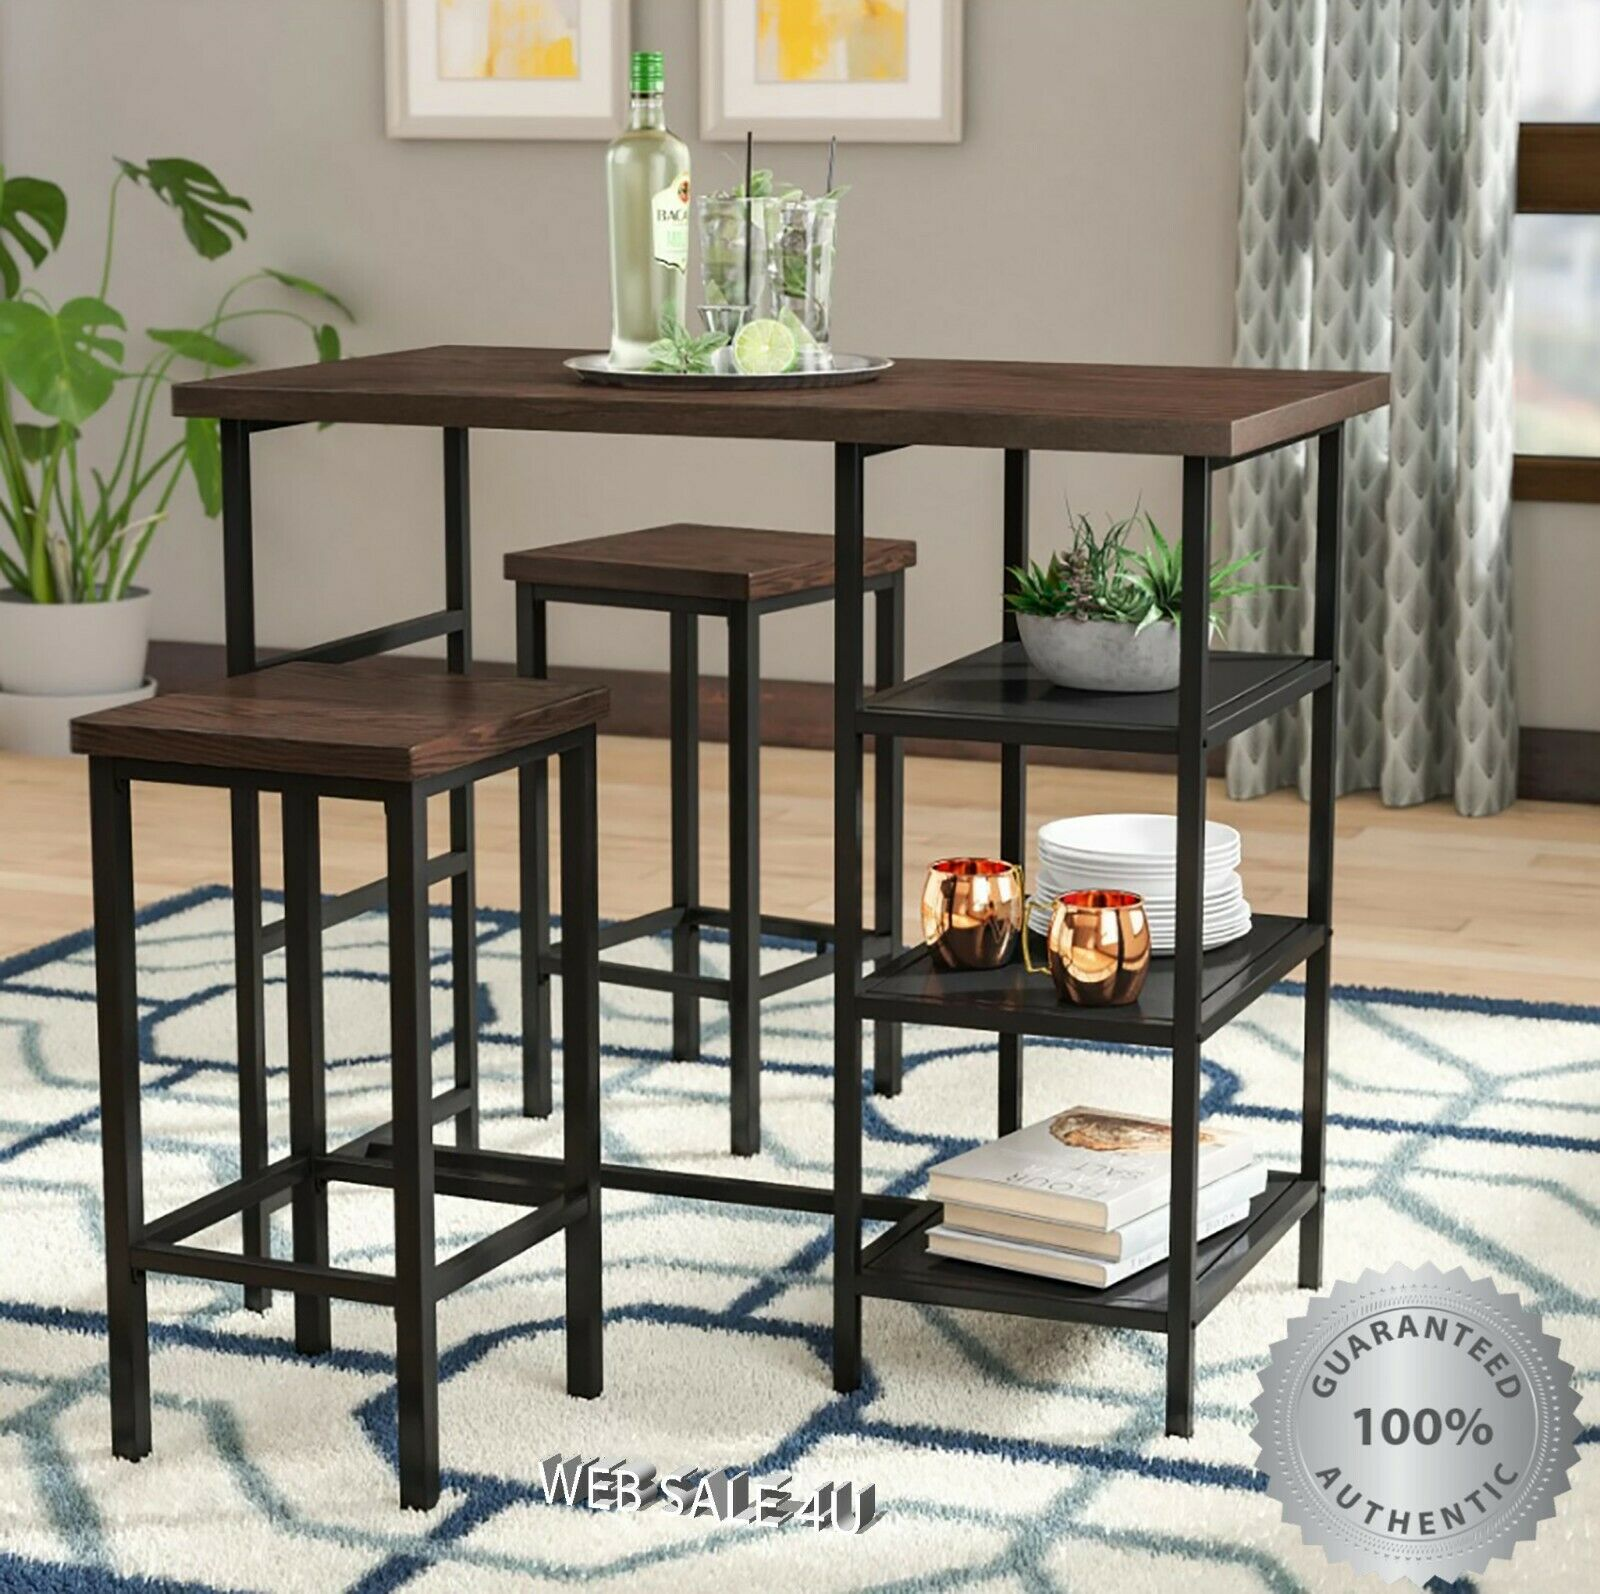 Pub Table Set 3 Piece Bar Stools Wood Metal Kitchen Dining Furniture Industrial For Sale Online